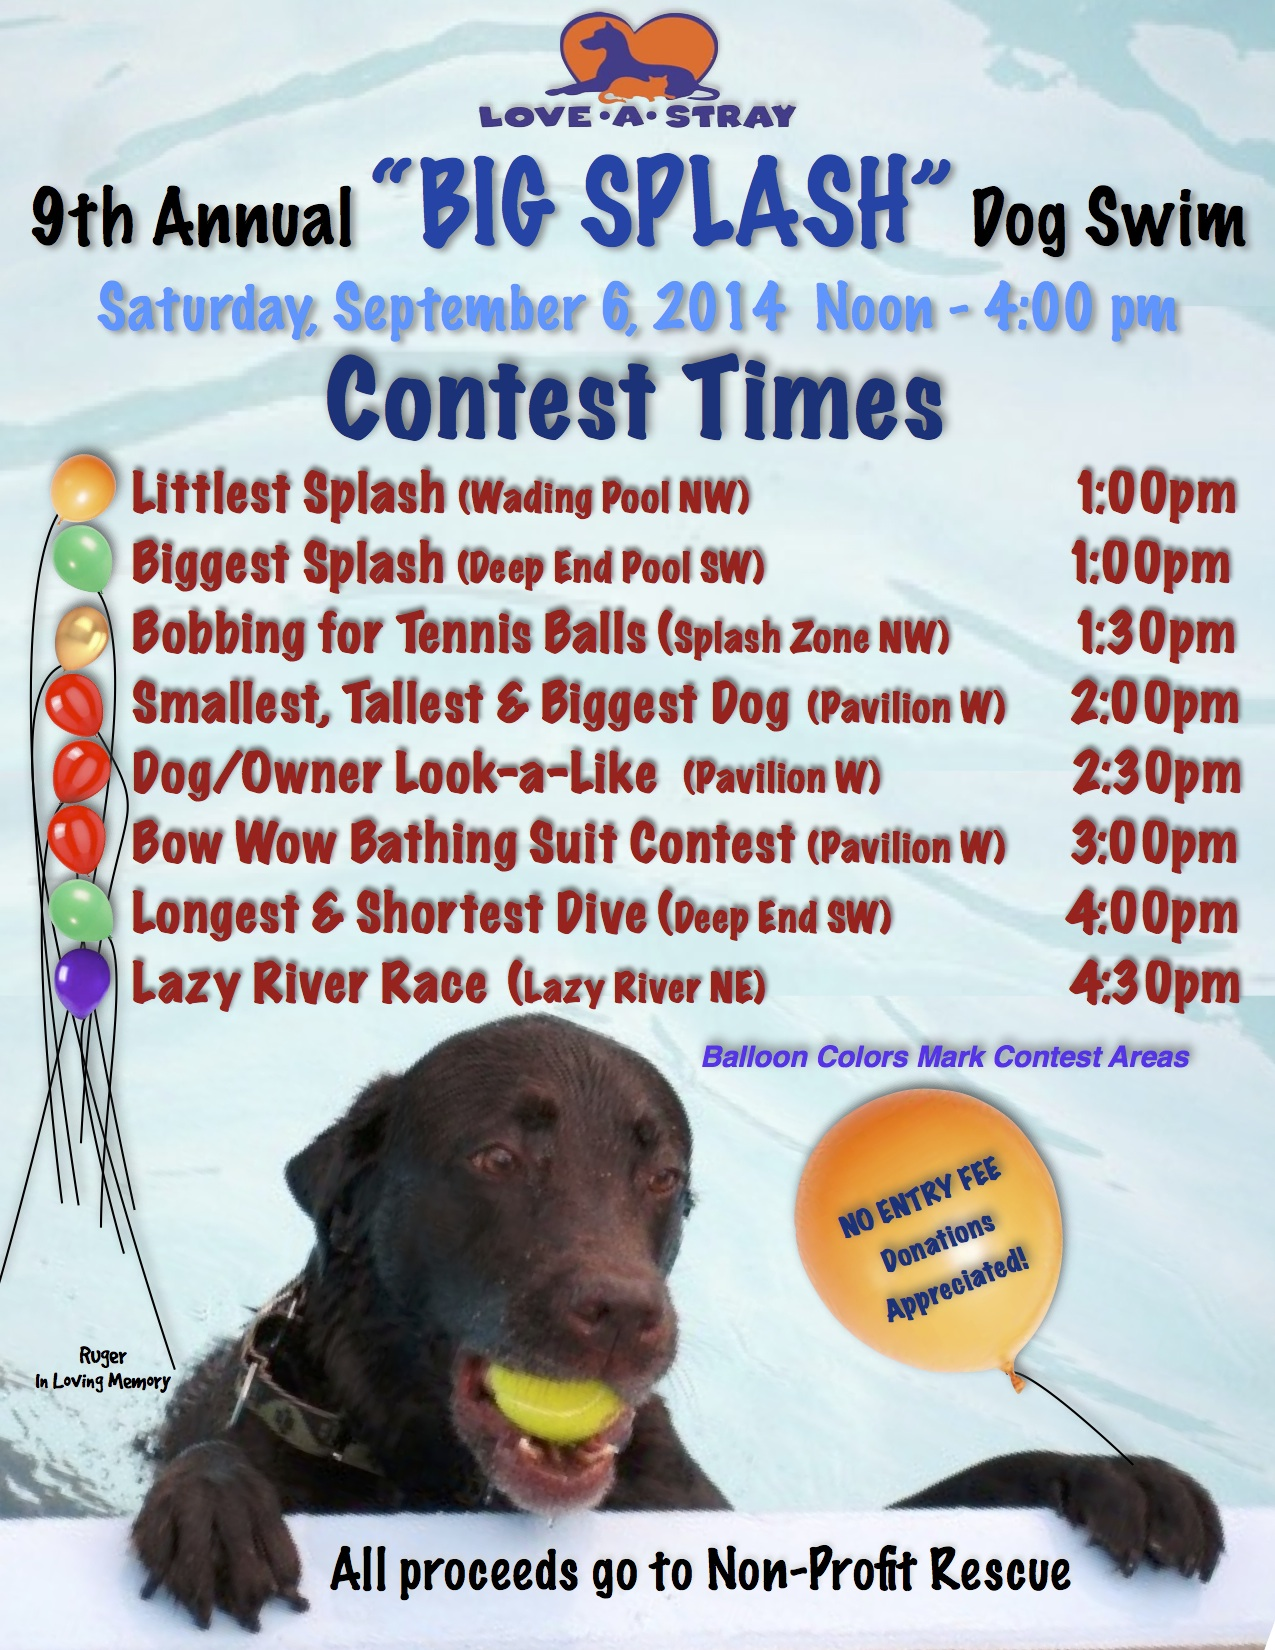 2014 Big Splash Contest Times